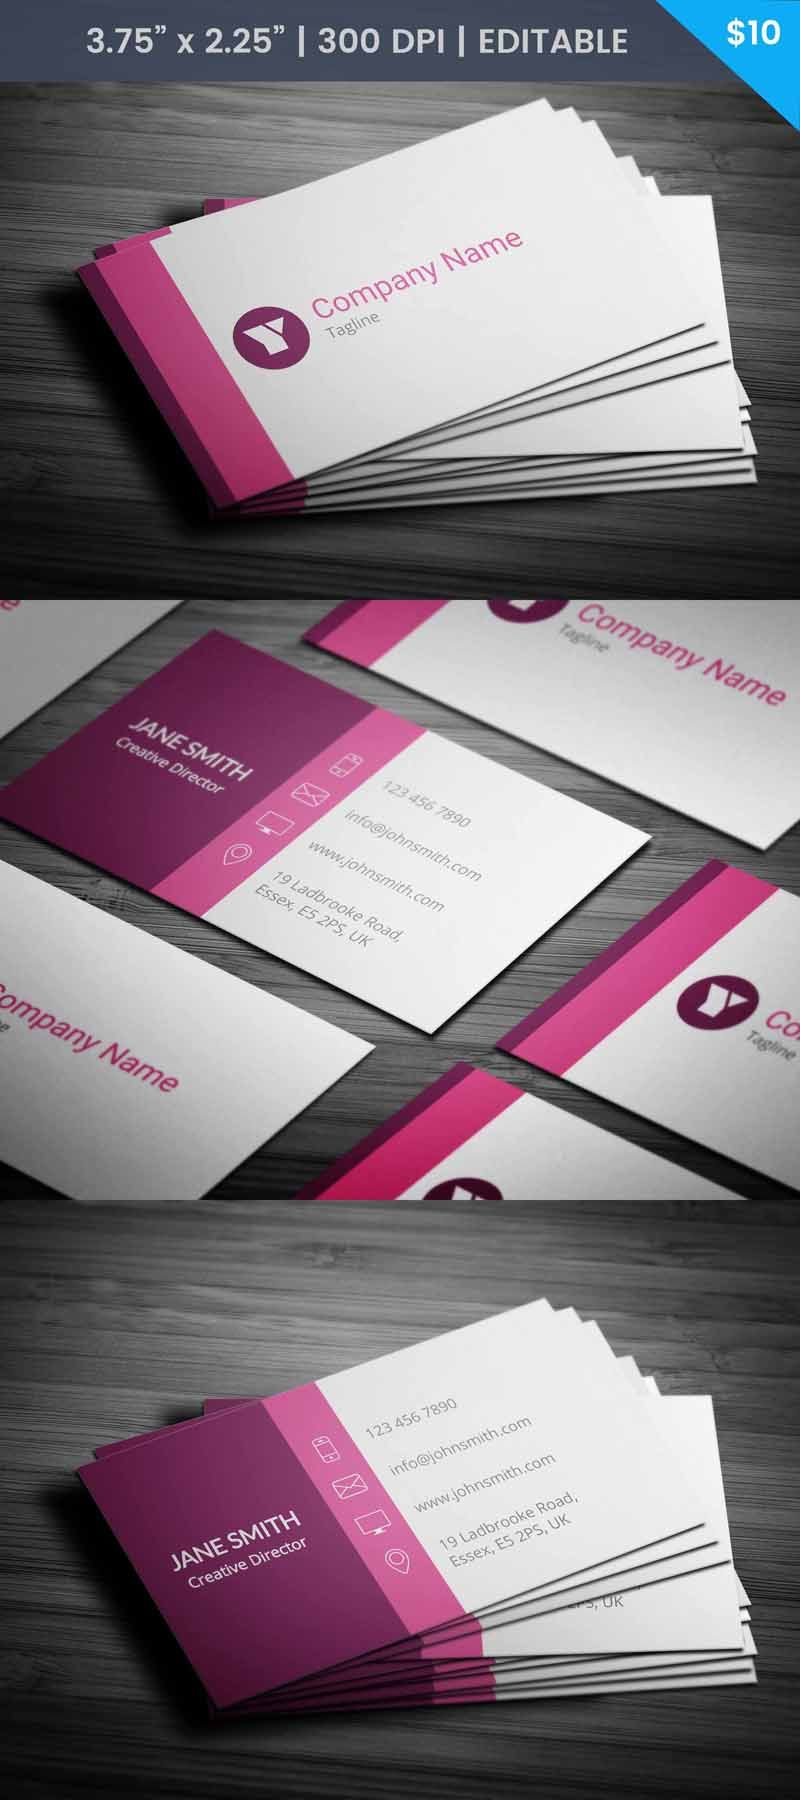 Free modern lawyer business card template businesscard modern free modern lawyer business card template businesscard accmission Gallery